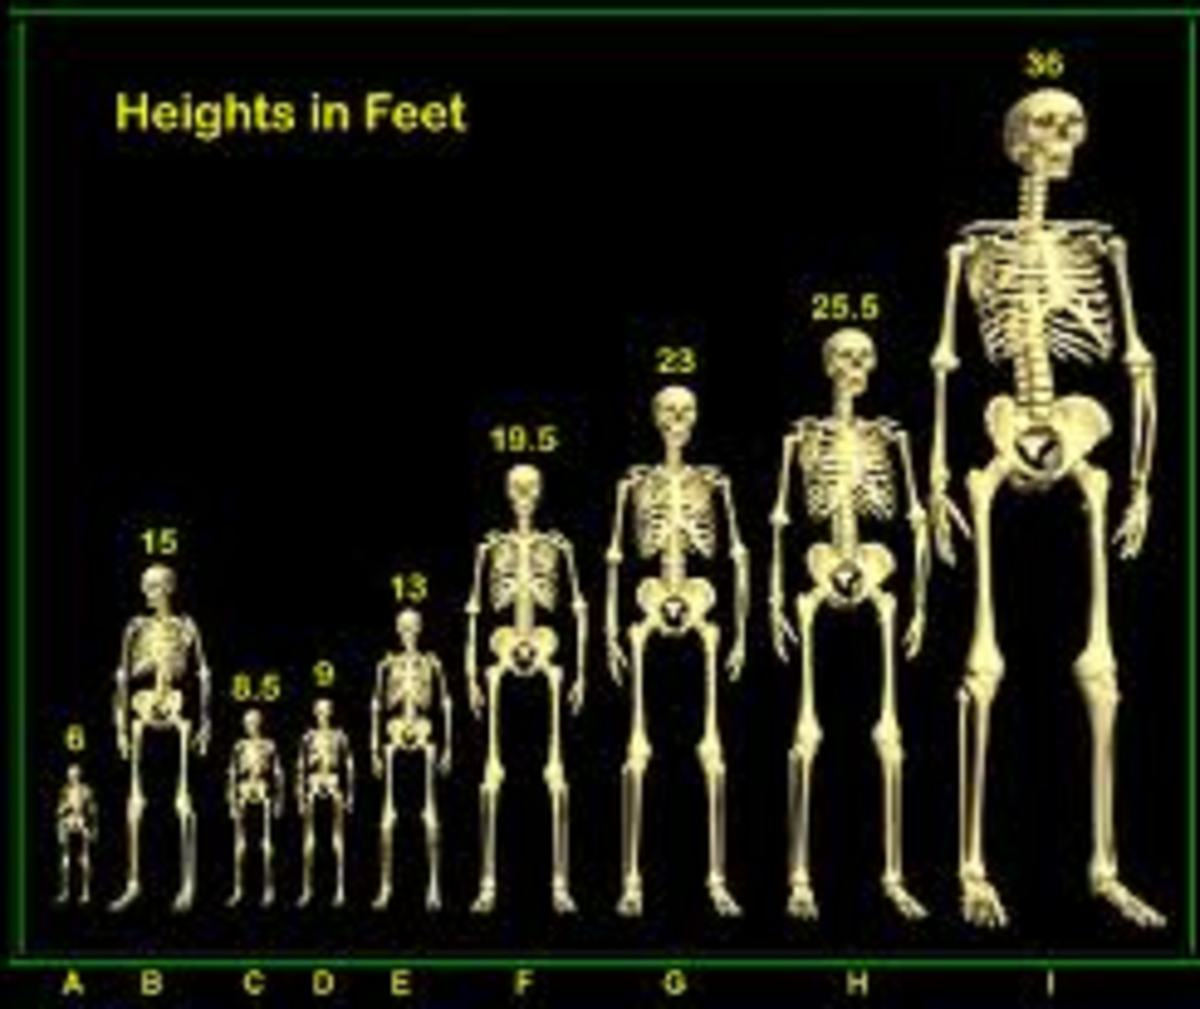 Giants have been found all over the earth, there is no doubt that they really existed just as the Bible claims.